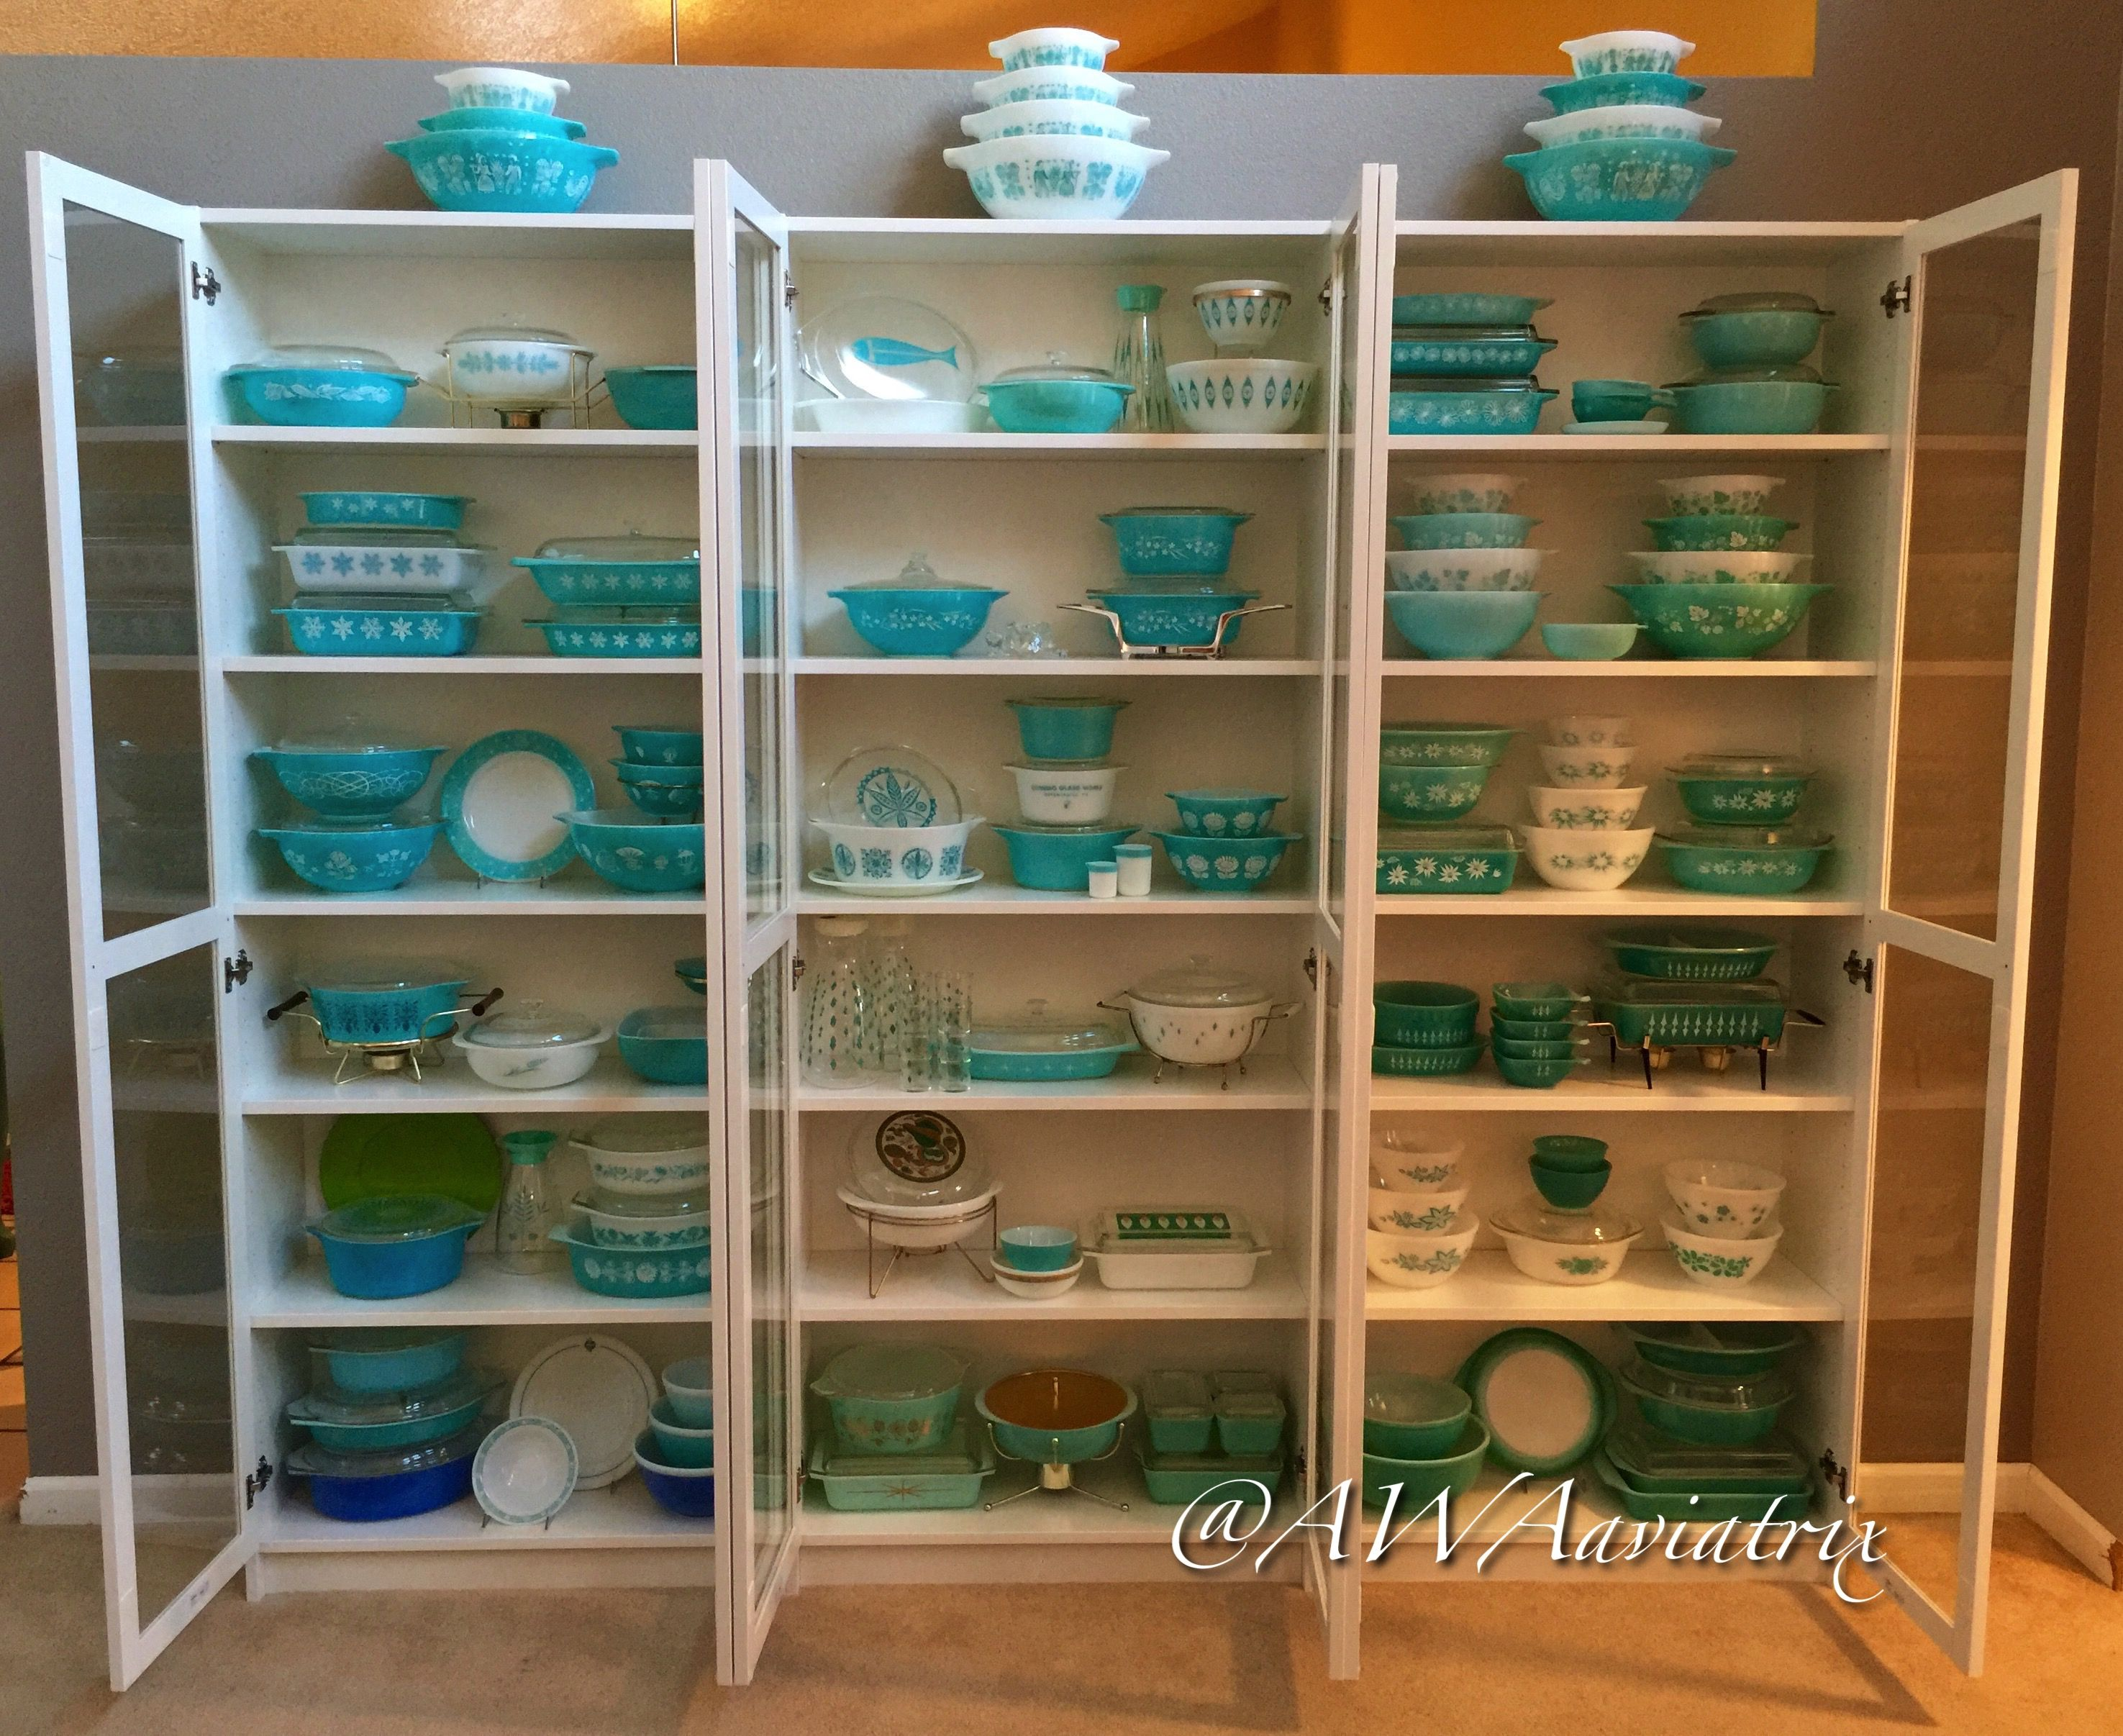 Shelf bookcases memorial wall displays antique white wall display - My Turquoise Pyrex Collection Displayed In Ikea Billy Bookcases With Oxberg Glass Doors